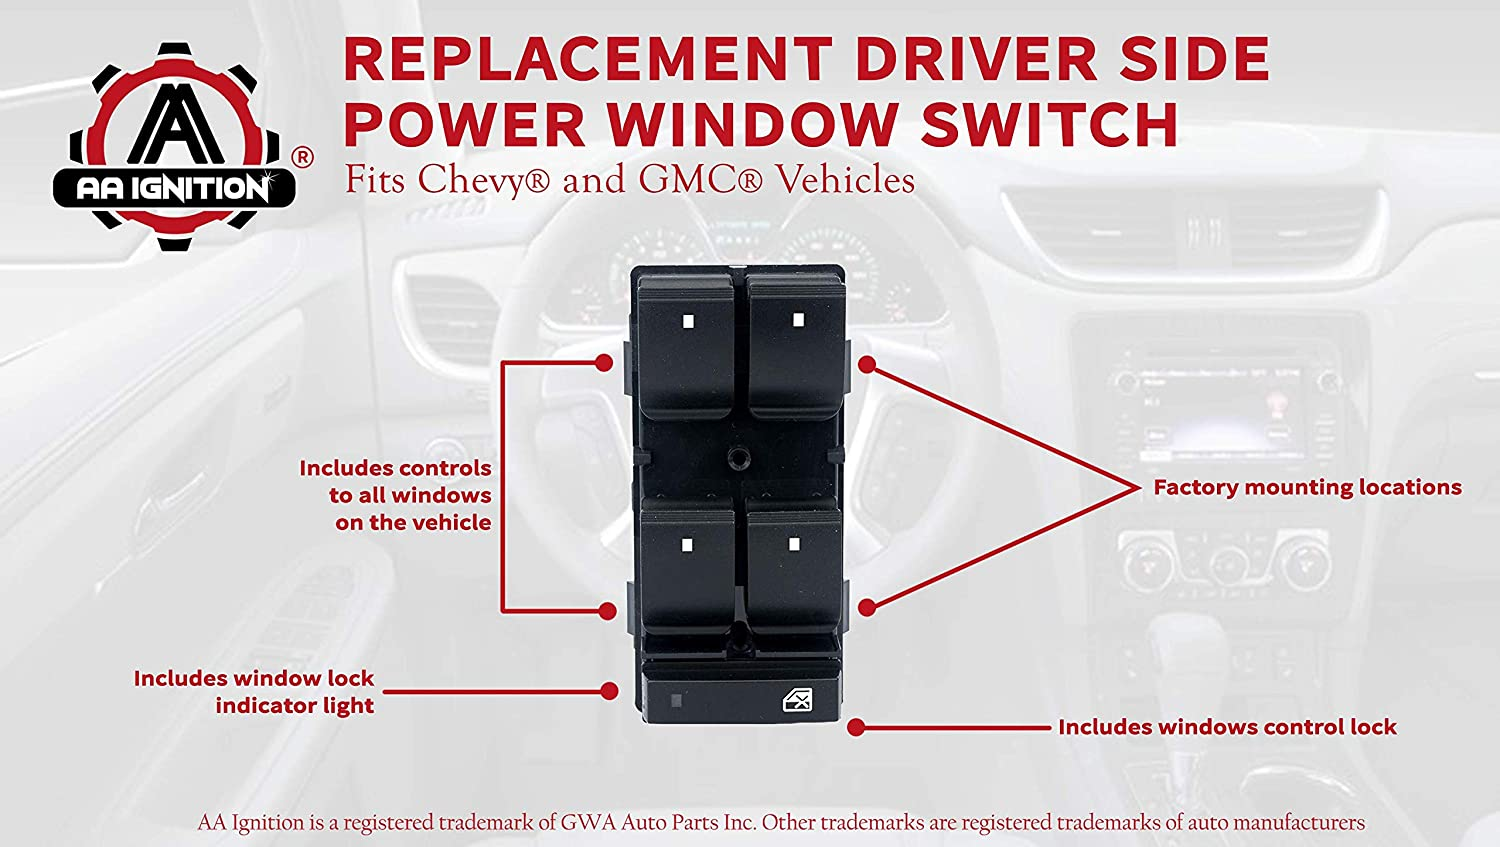 HHR 2009-2015 Driver Side Power Window Switch 25789692 Door Lock Switch Replacement Replaces# 25951963 GMC Sierra 2007-2013 /& Chevrolet Traverse 20945129 2500 Fits Chevy Silverado 1500